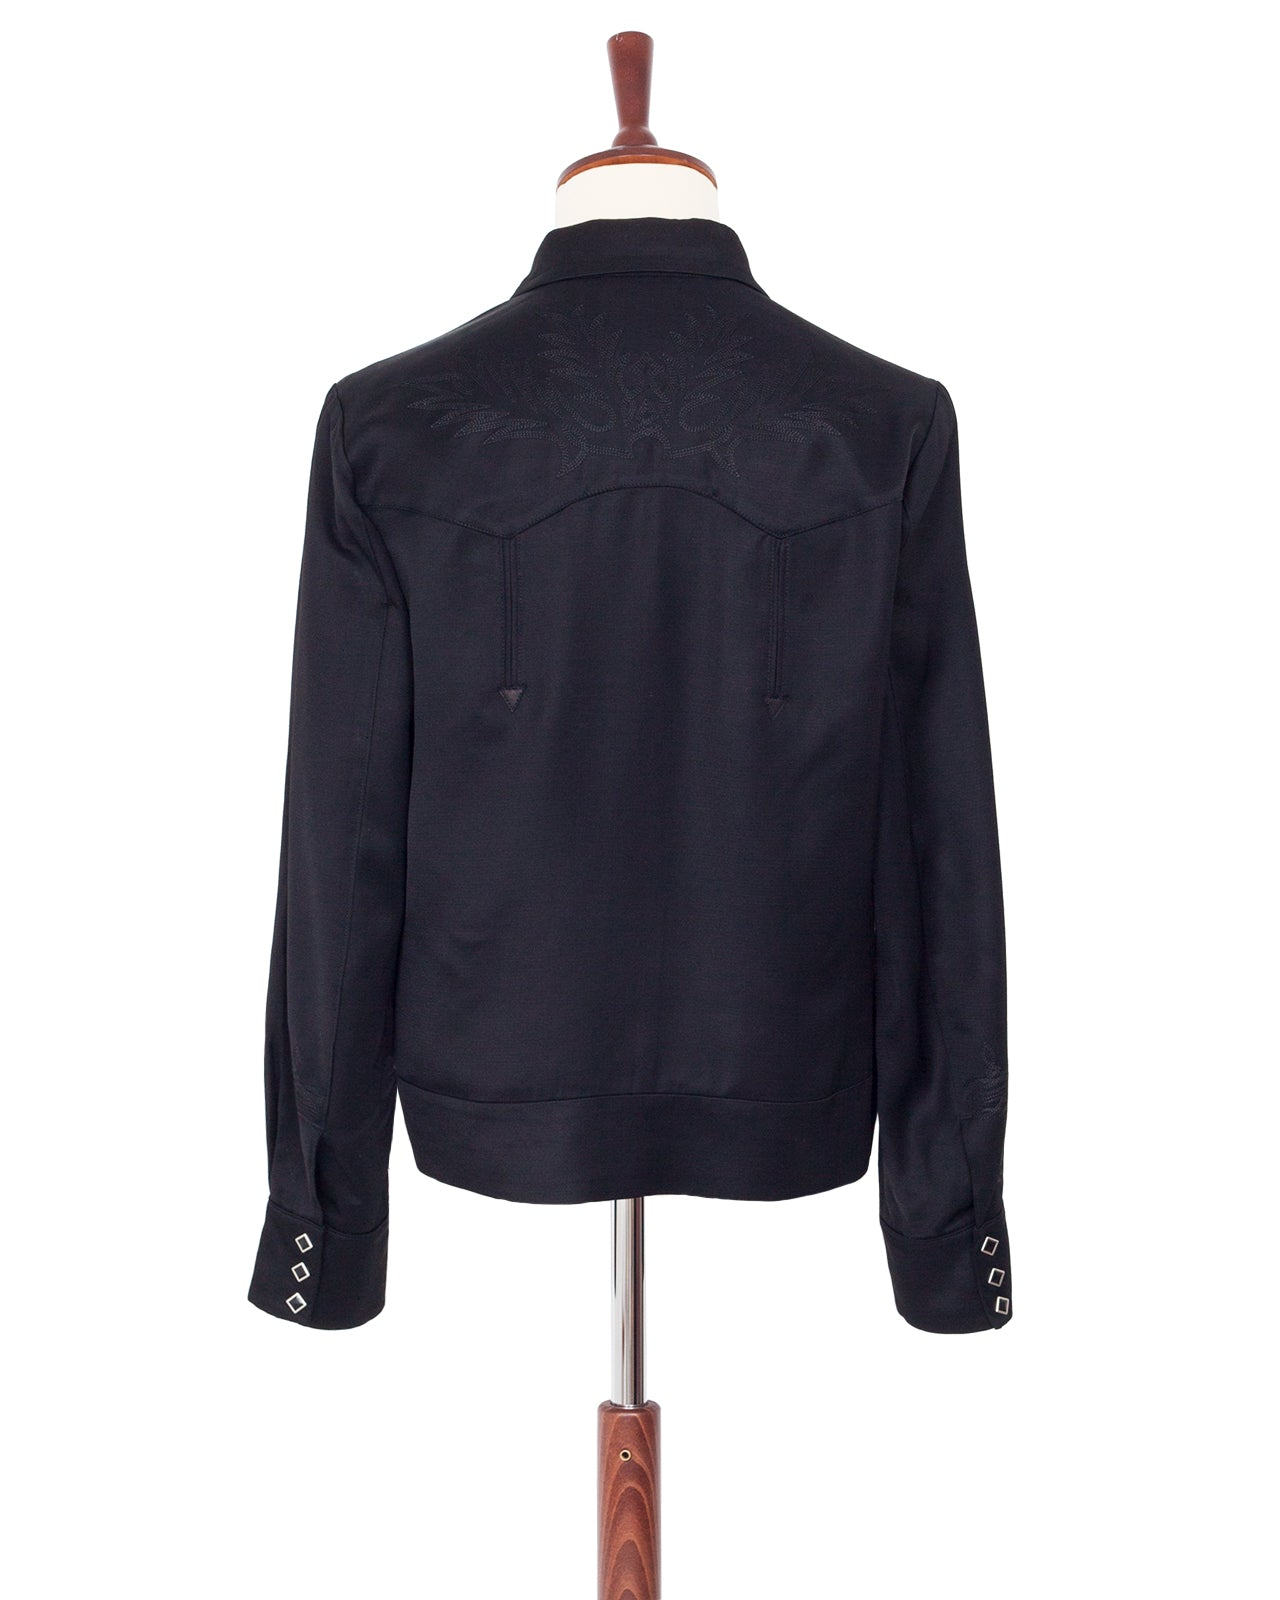 The Letters Bolero Jacket, Rayon Twill, Black